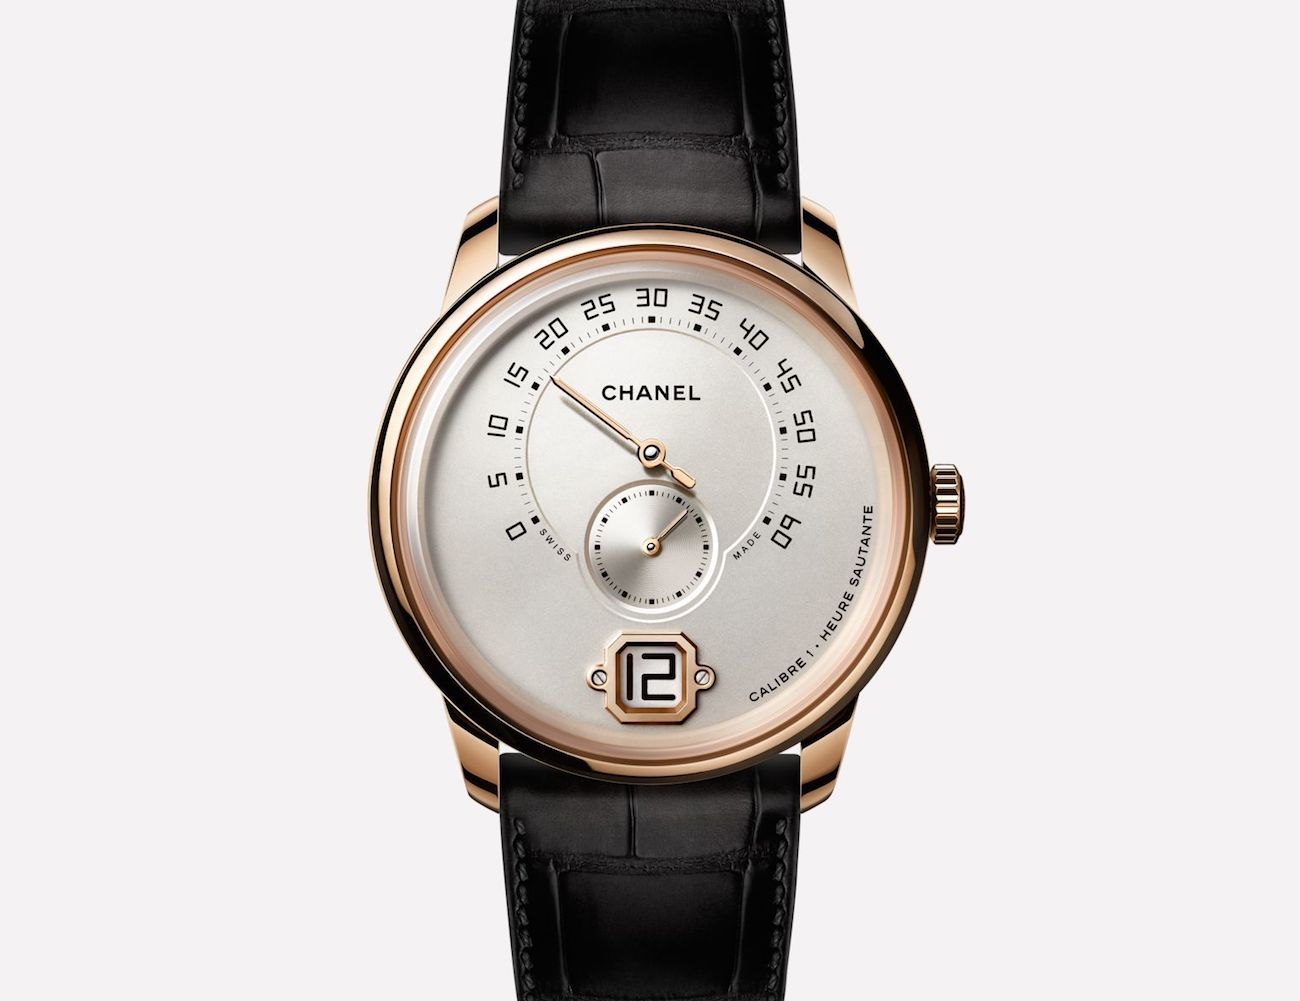 Monsieur de Chanel Watch